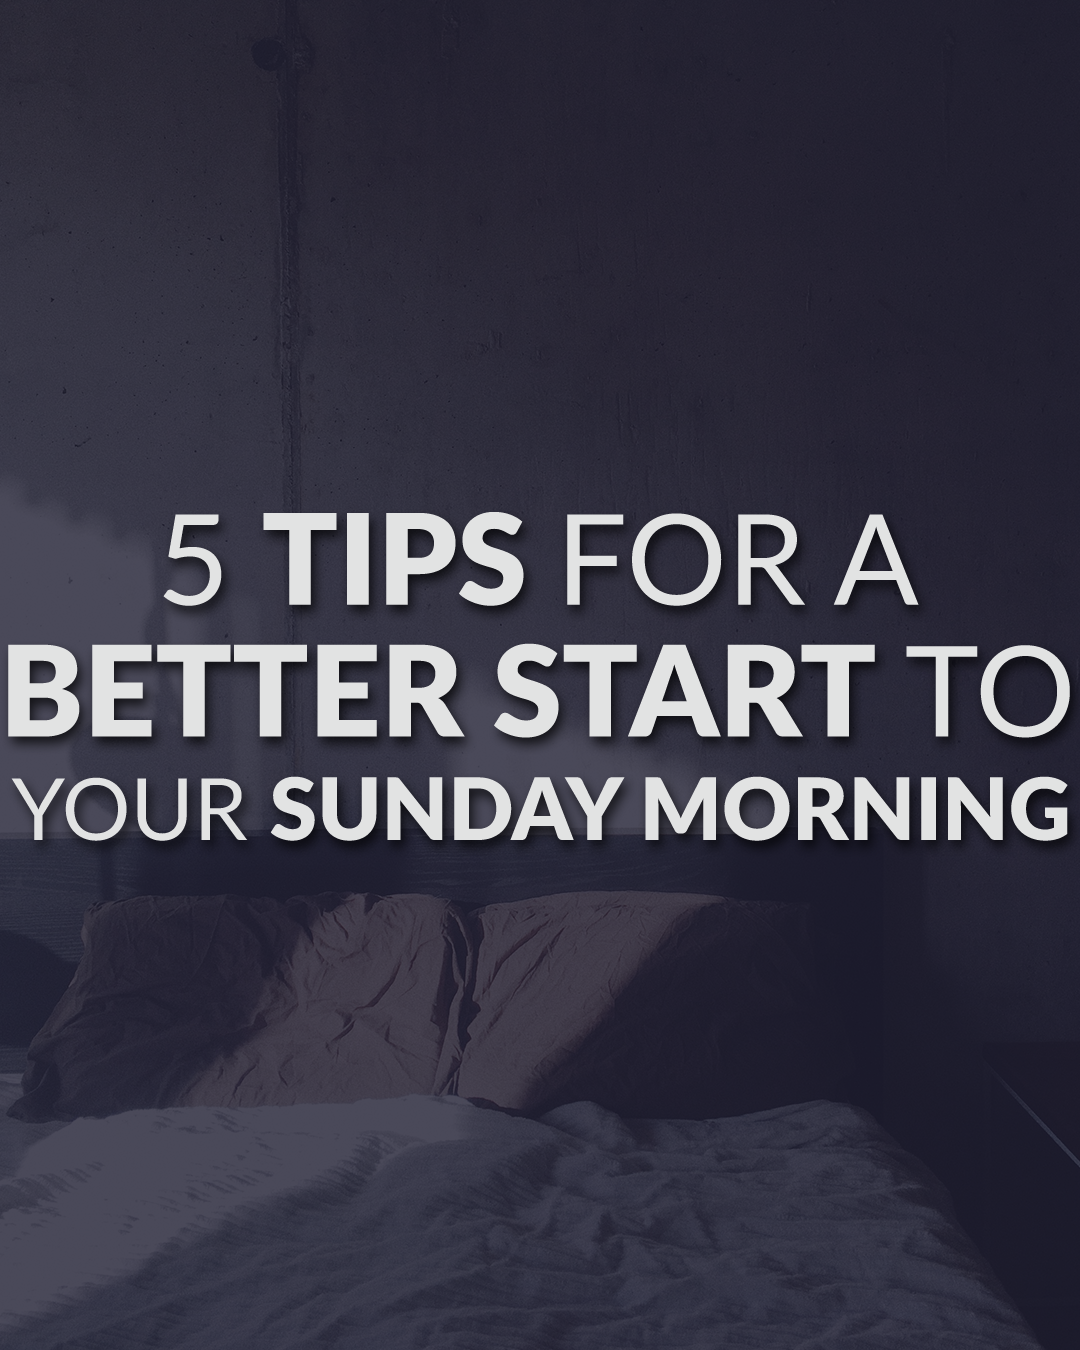 5 Tips For A Better Start To Your Sunday Morning